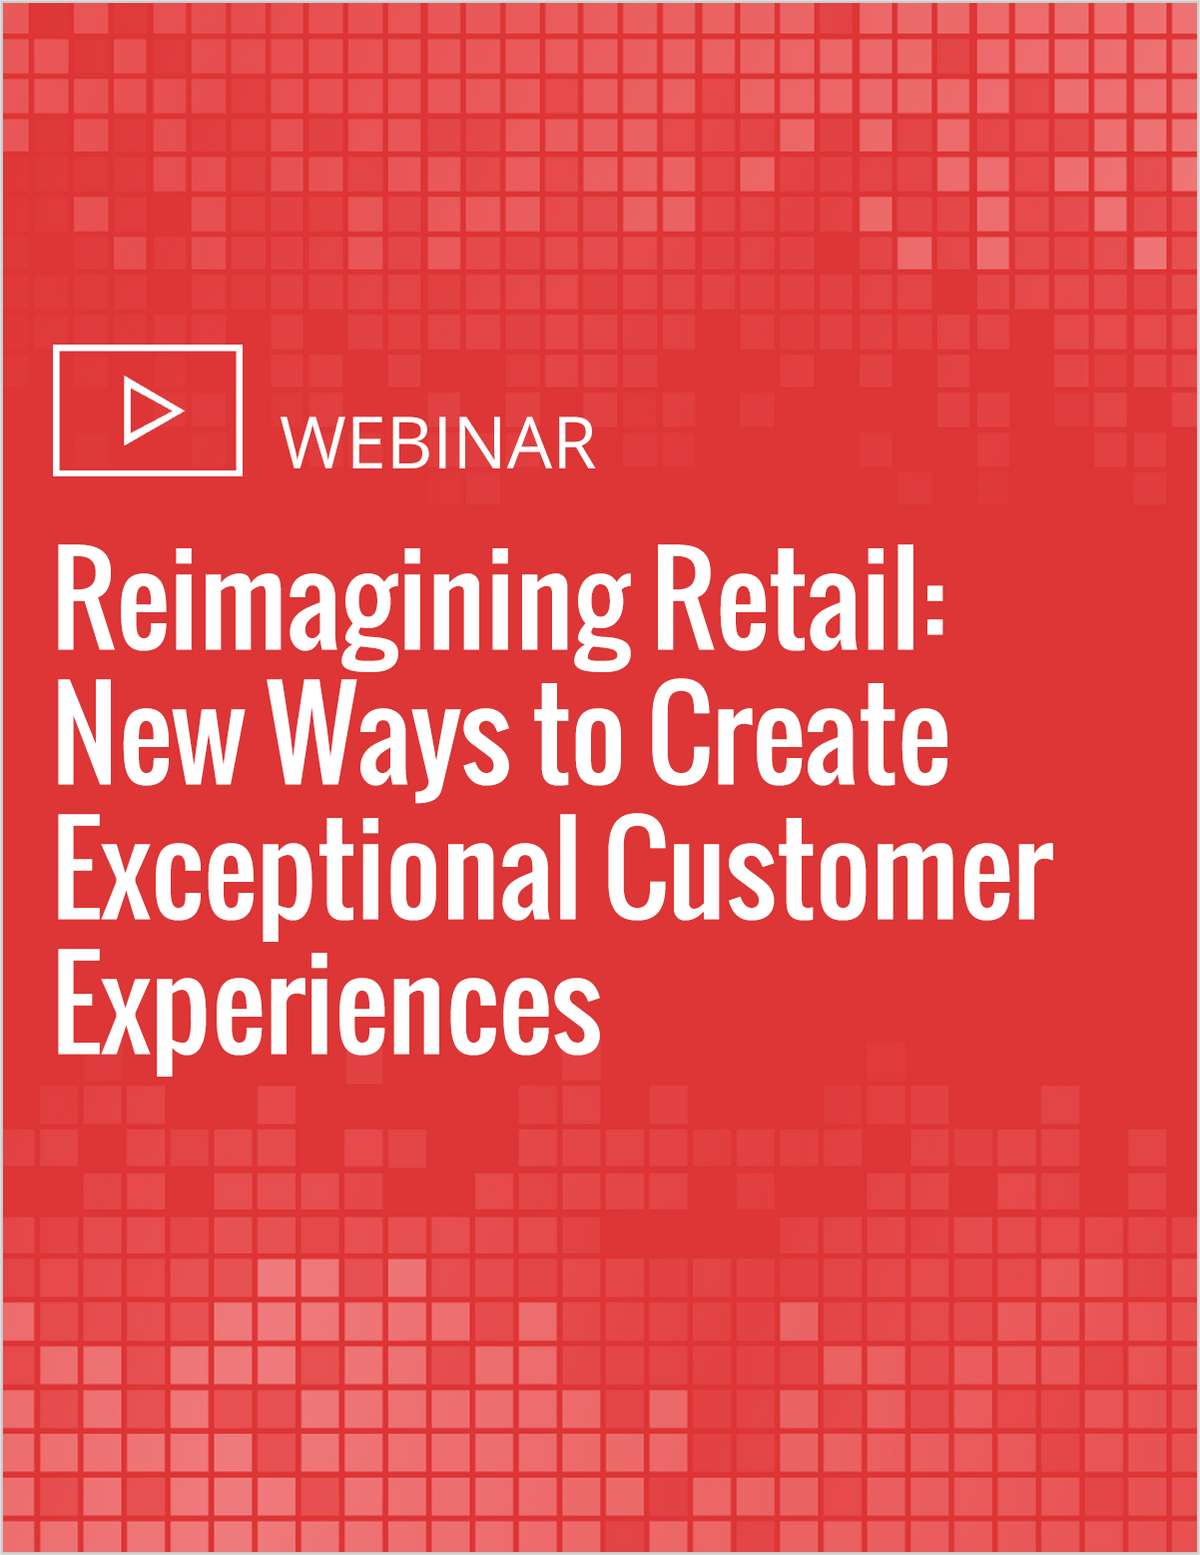 Reimagining Retail: New Ways to Create Exceptional Customer Experiences